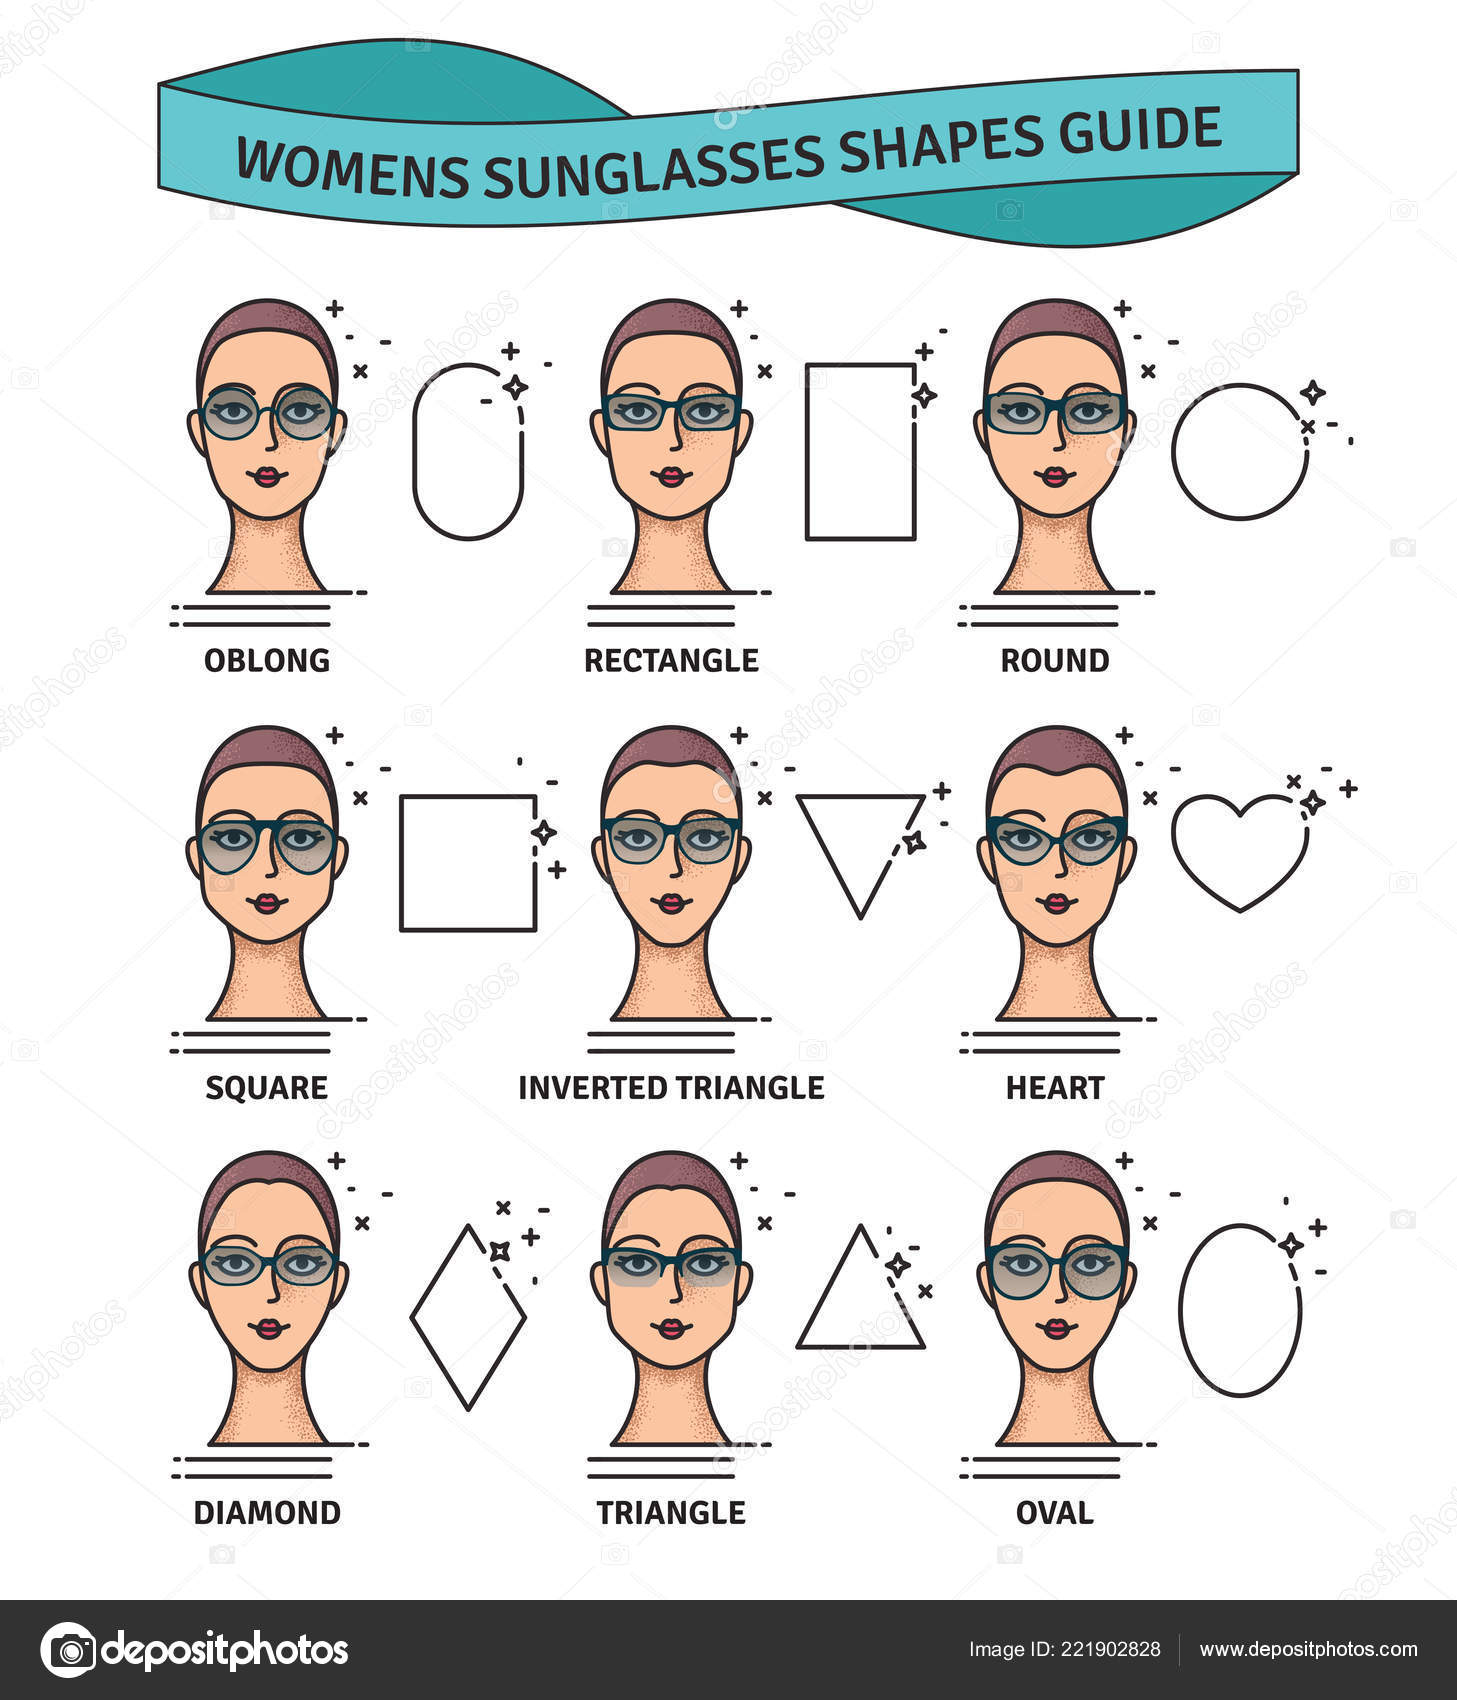 46076c1087 Sunglasses shapes guide. Womens sunglasses shapes matched with face shape.  Various forms of sunglasses